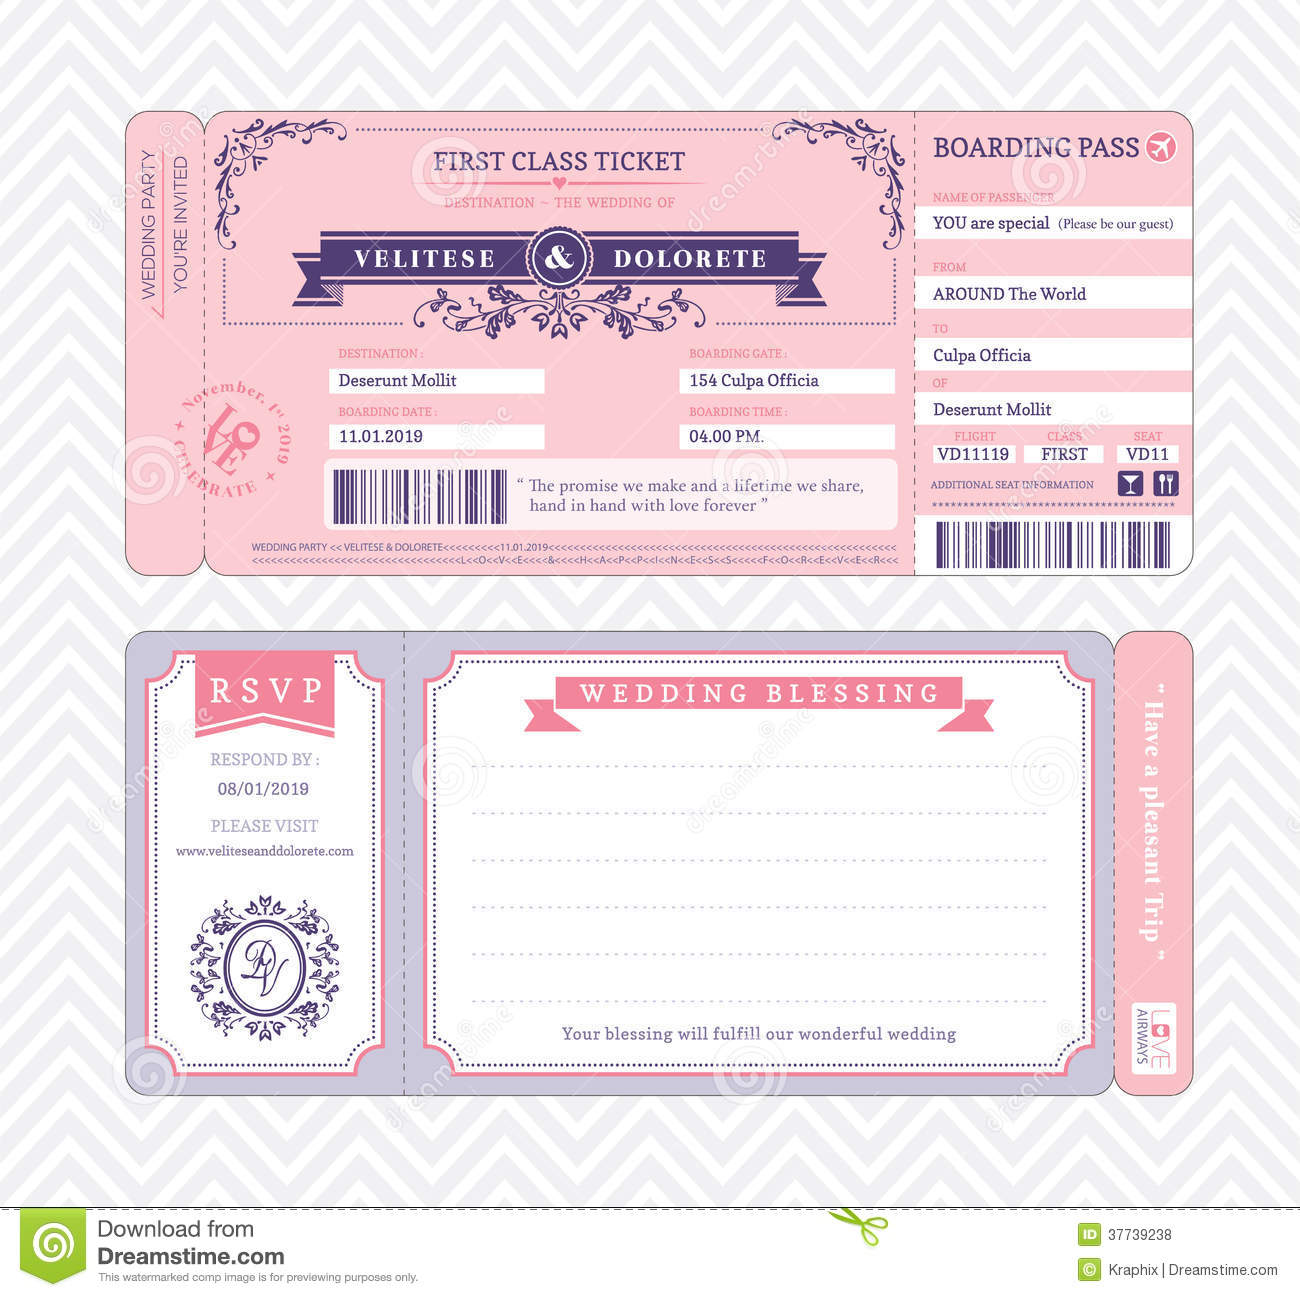 Boarding Pass Wedding Invitation Template Stock Vector - Wedding invitation templates: boarding pass wedding invitation template